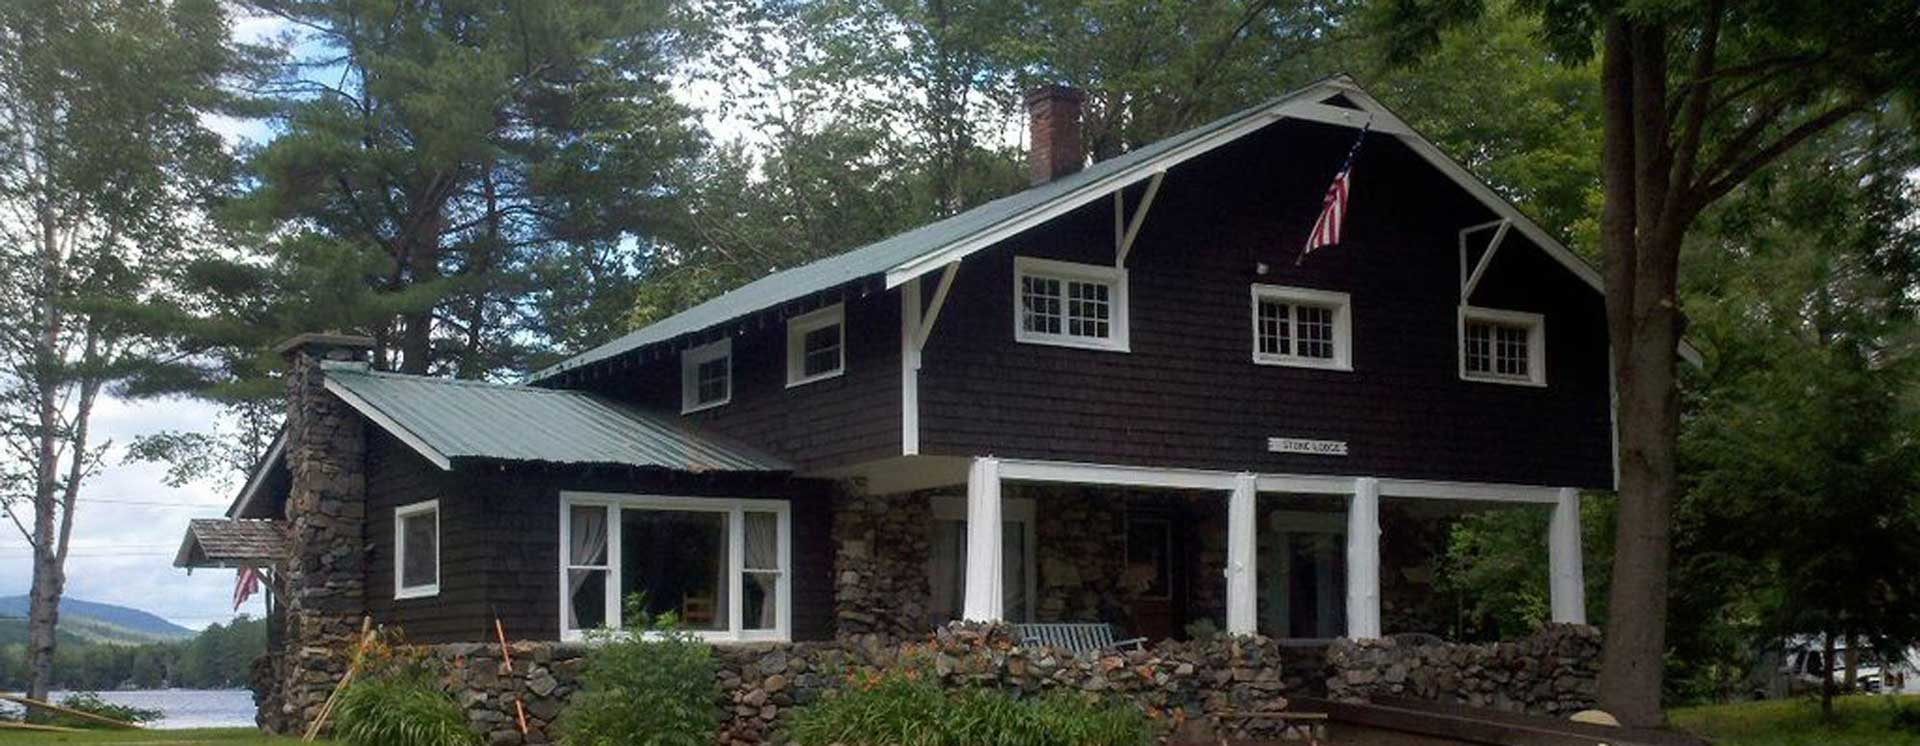 Stone Lodge on Loon Lake, front of house with lake in background